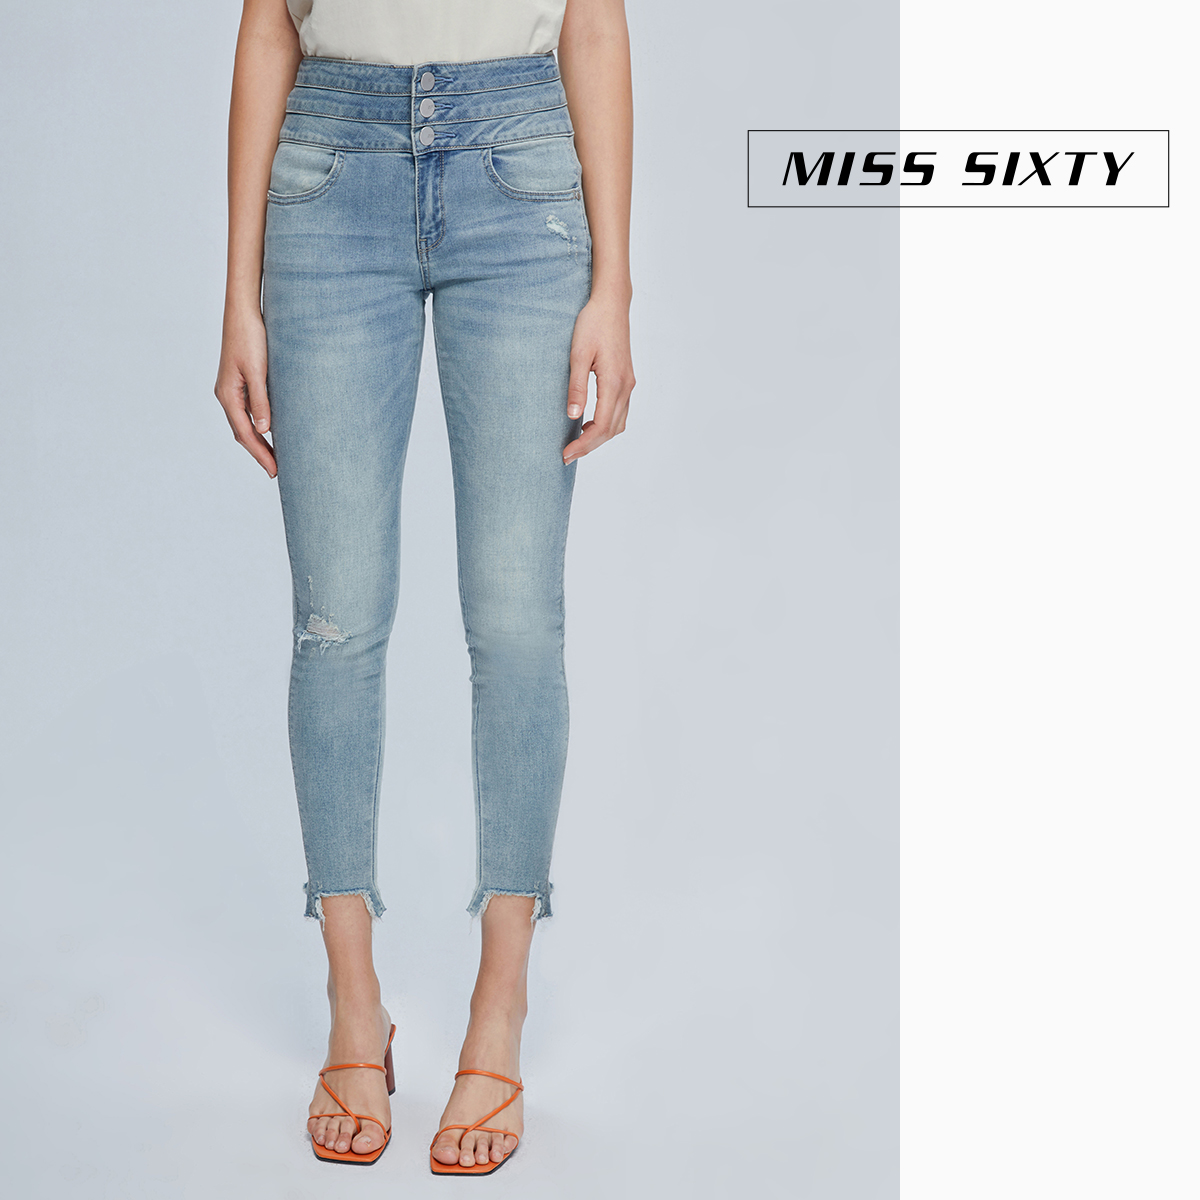 Miss sixty2020 spring new tight legged pants with holes showing thin and all-around high waist jeans for women